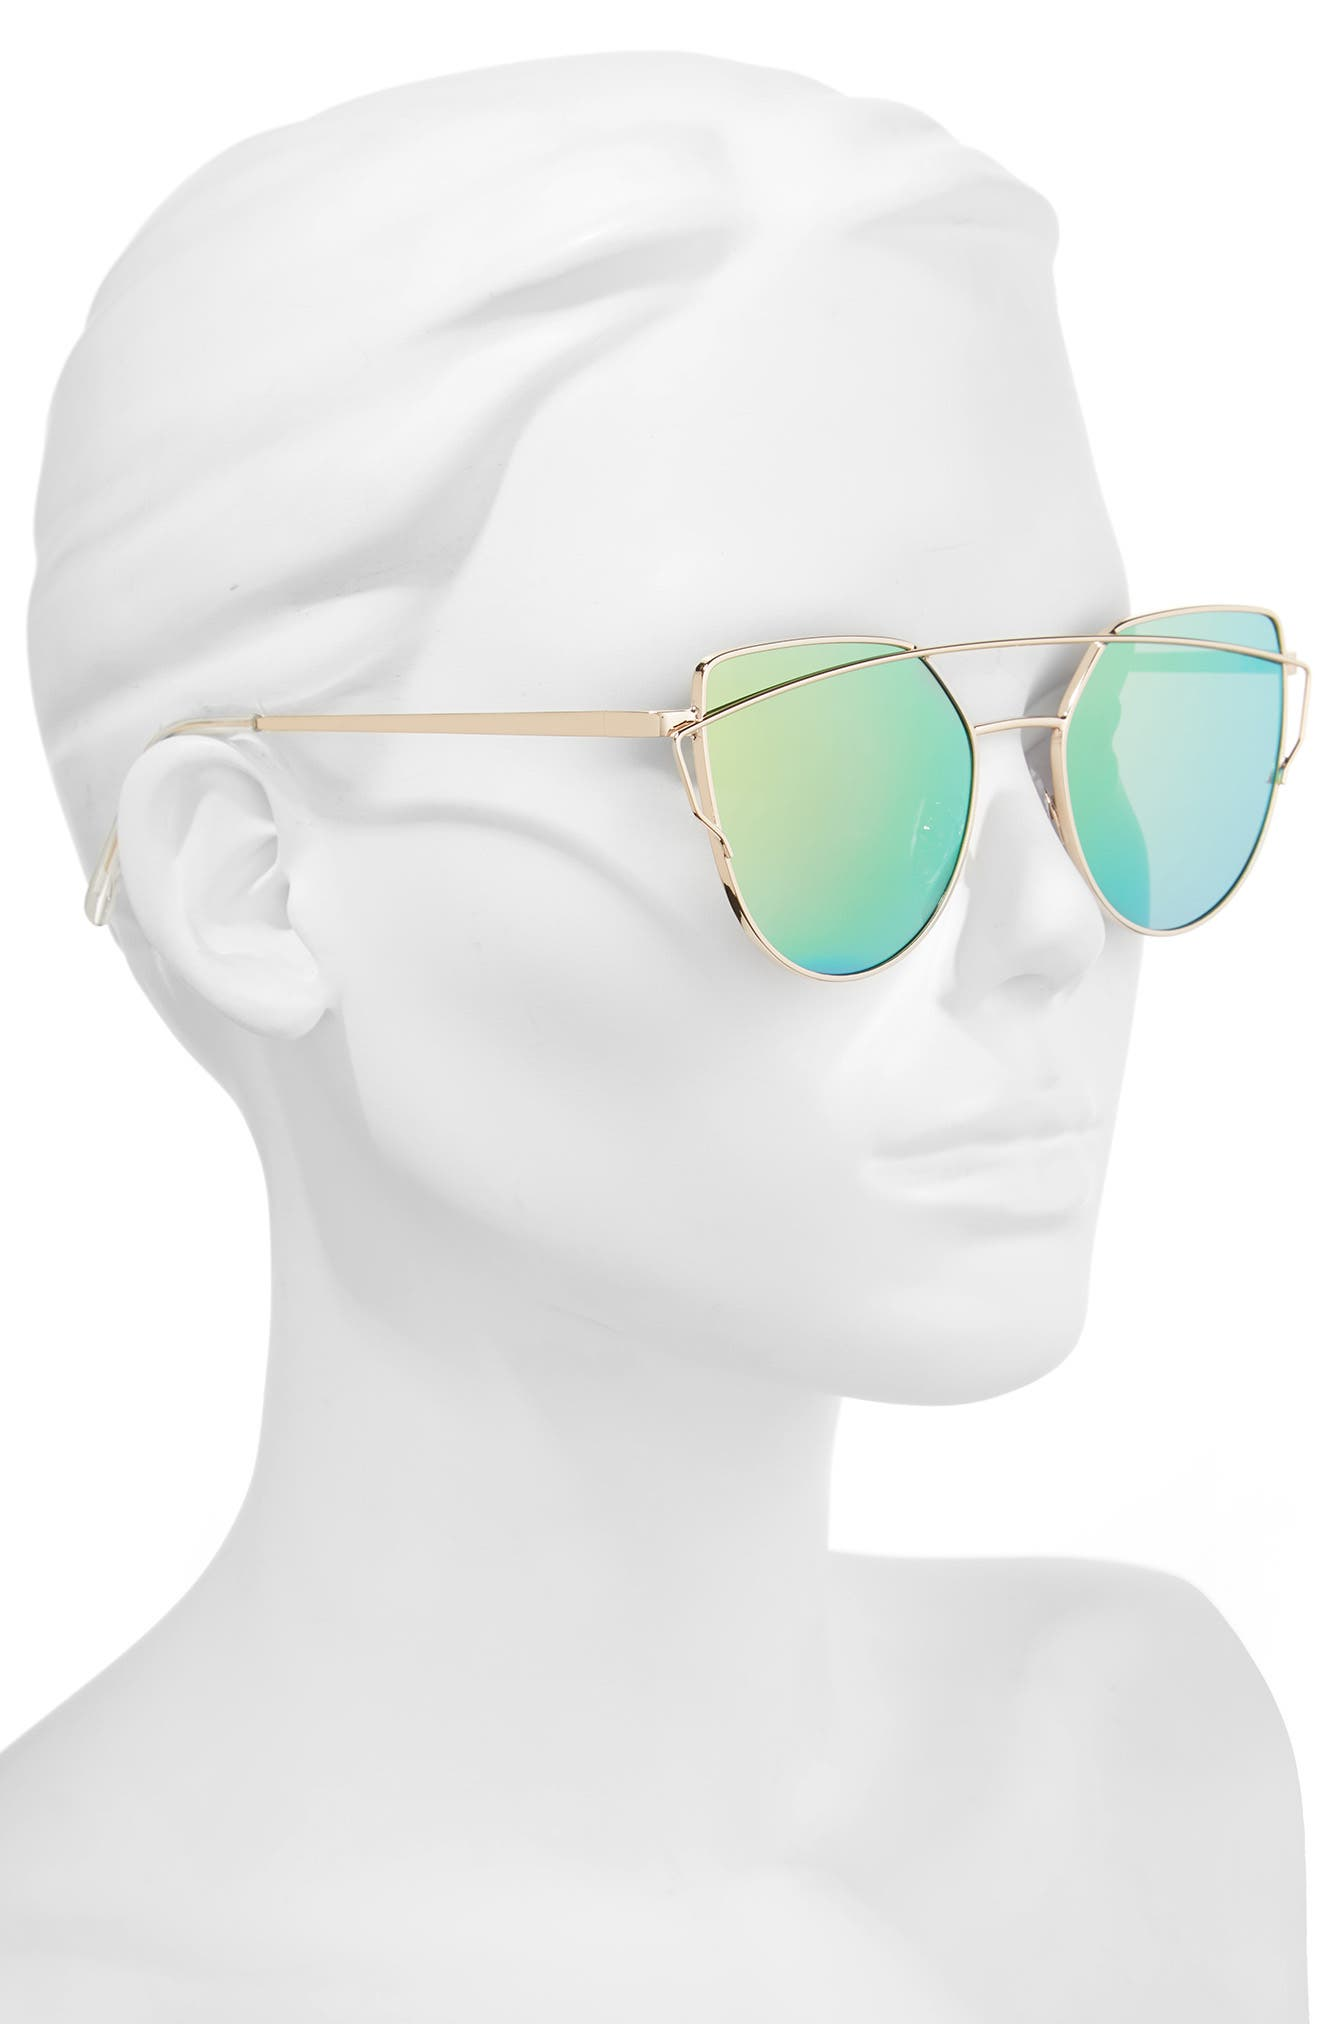 51mm Thin Brow Angular Aviator Sunglasses,                             Alternate thumbnail 14, color,